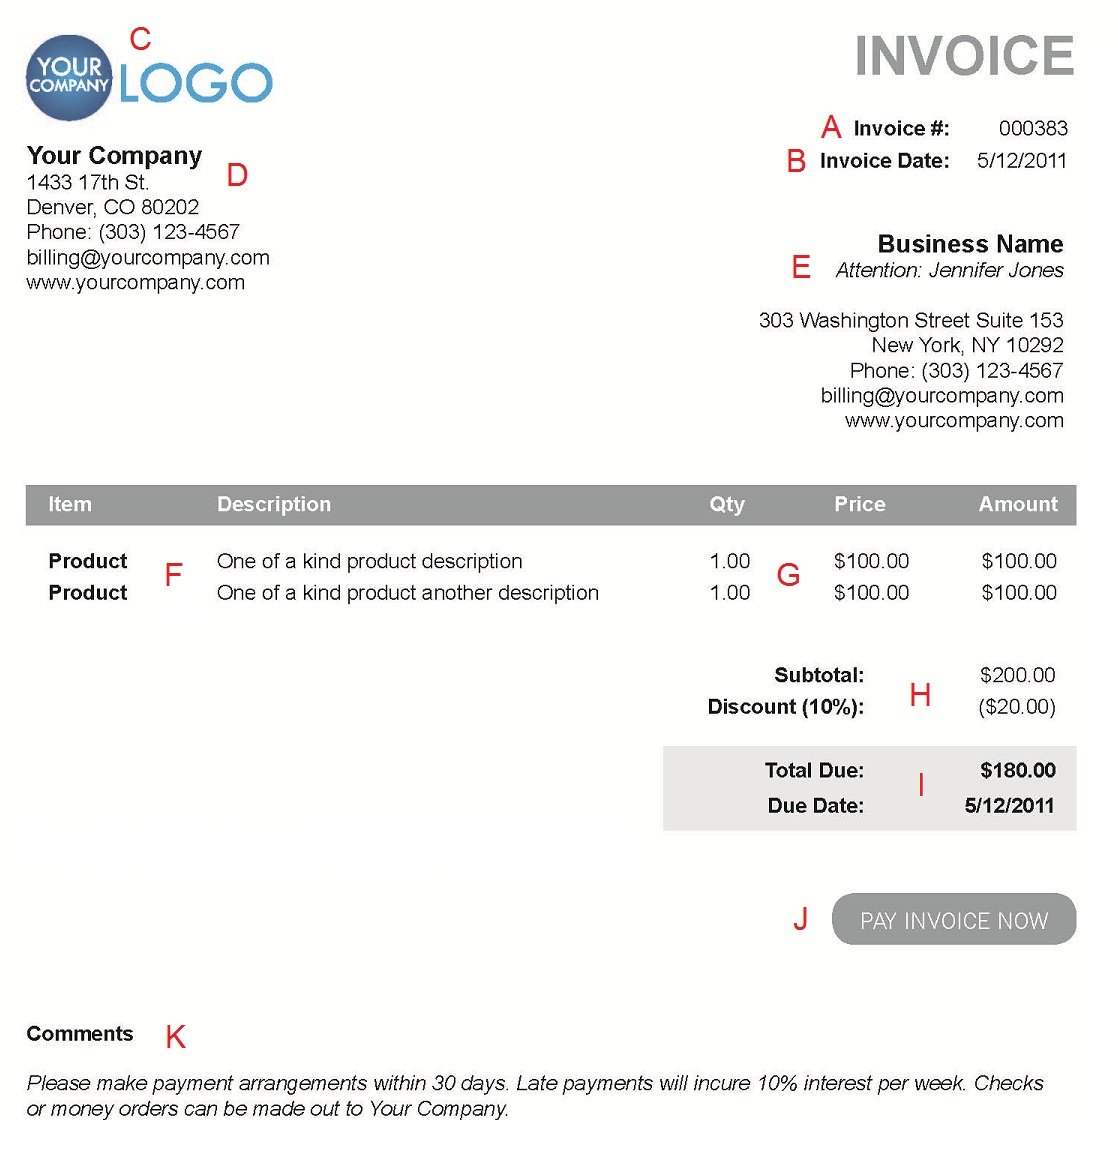 Sandiegolocksmithsus  Wonderful The  Different Sections Of An Electronic Payment Invoice With Gorgeous A  With Agreeable Invoice Template Microsoft Office Also Instant Invoice In Addition Car Repair Invoice Template And Auto Repair Invoice Sample As Well As Shopify Invoice Generator Additionally What Is Invoice Pricing From Paysimplecom With Sandiegolocksmithsus  Gorgeous The  Different Sections Of An Electronic Payment Invoice With Agreeable A  And Wonderful Invoice Template Microsoft Office Also Instant Invoice In Addition Car Repair Invoice Template From Paysimplecom